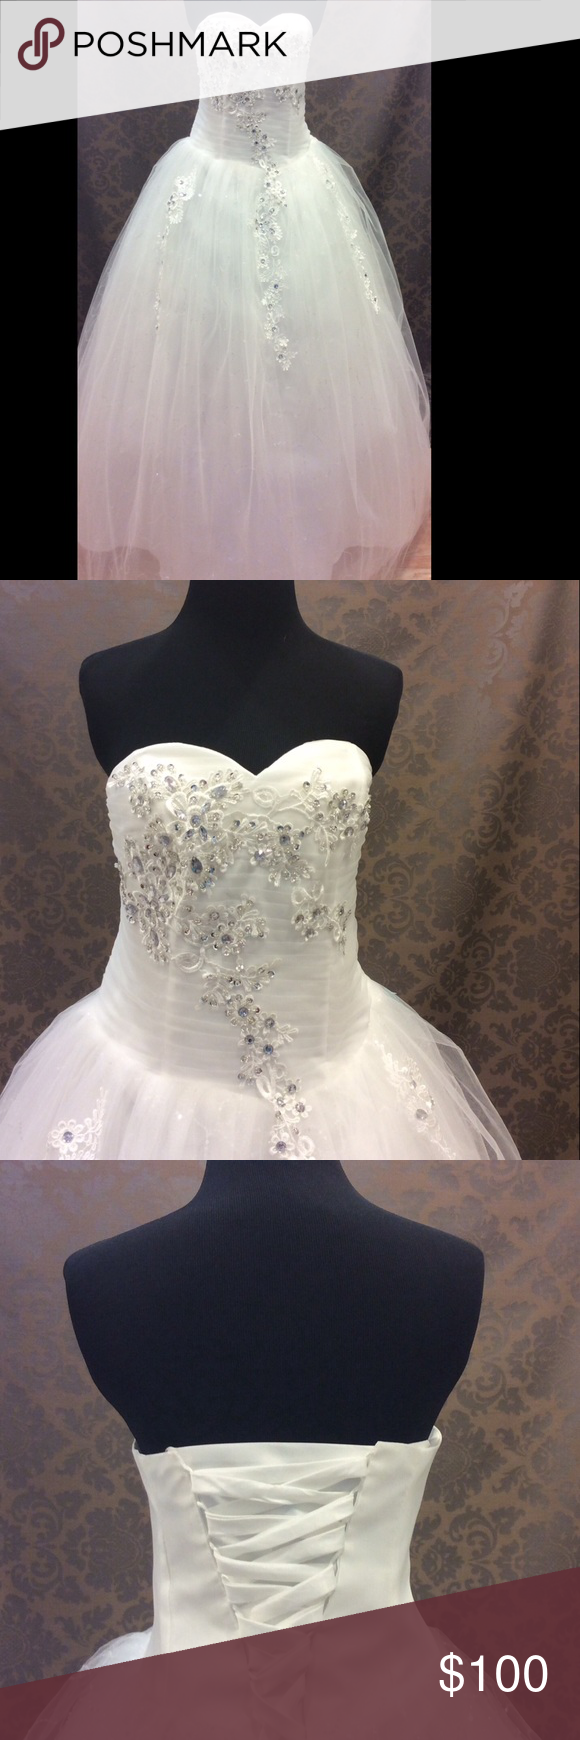 Corset for under wedding dress  MAKE A OFFER NWT Budget Wedding Dress Boutique  Perfect fit